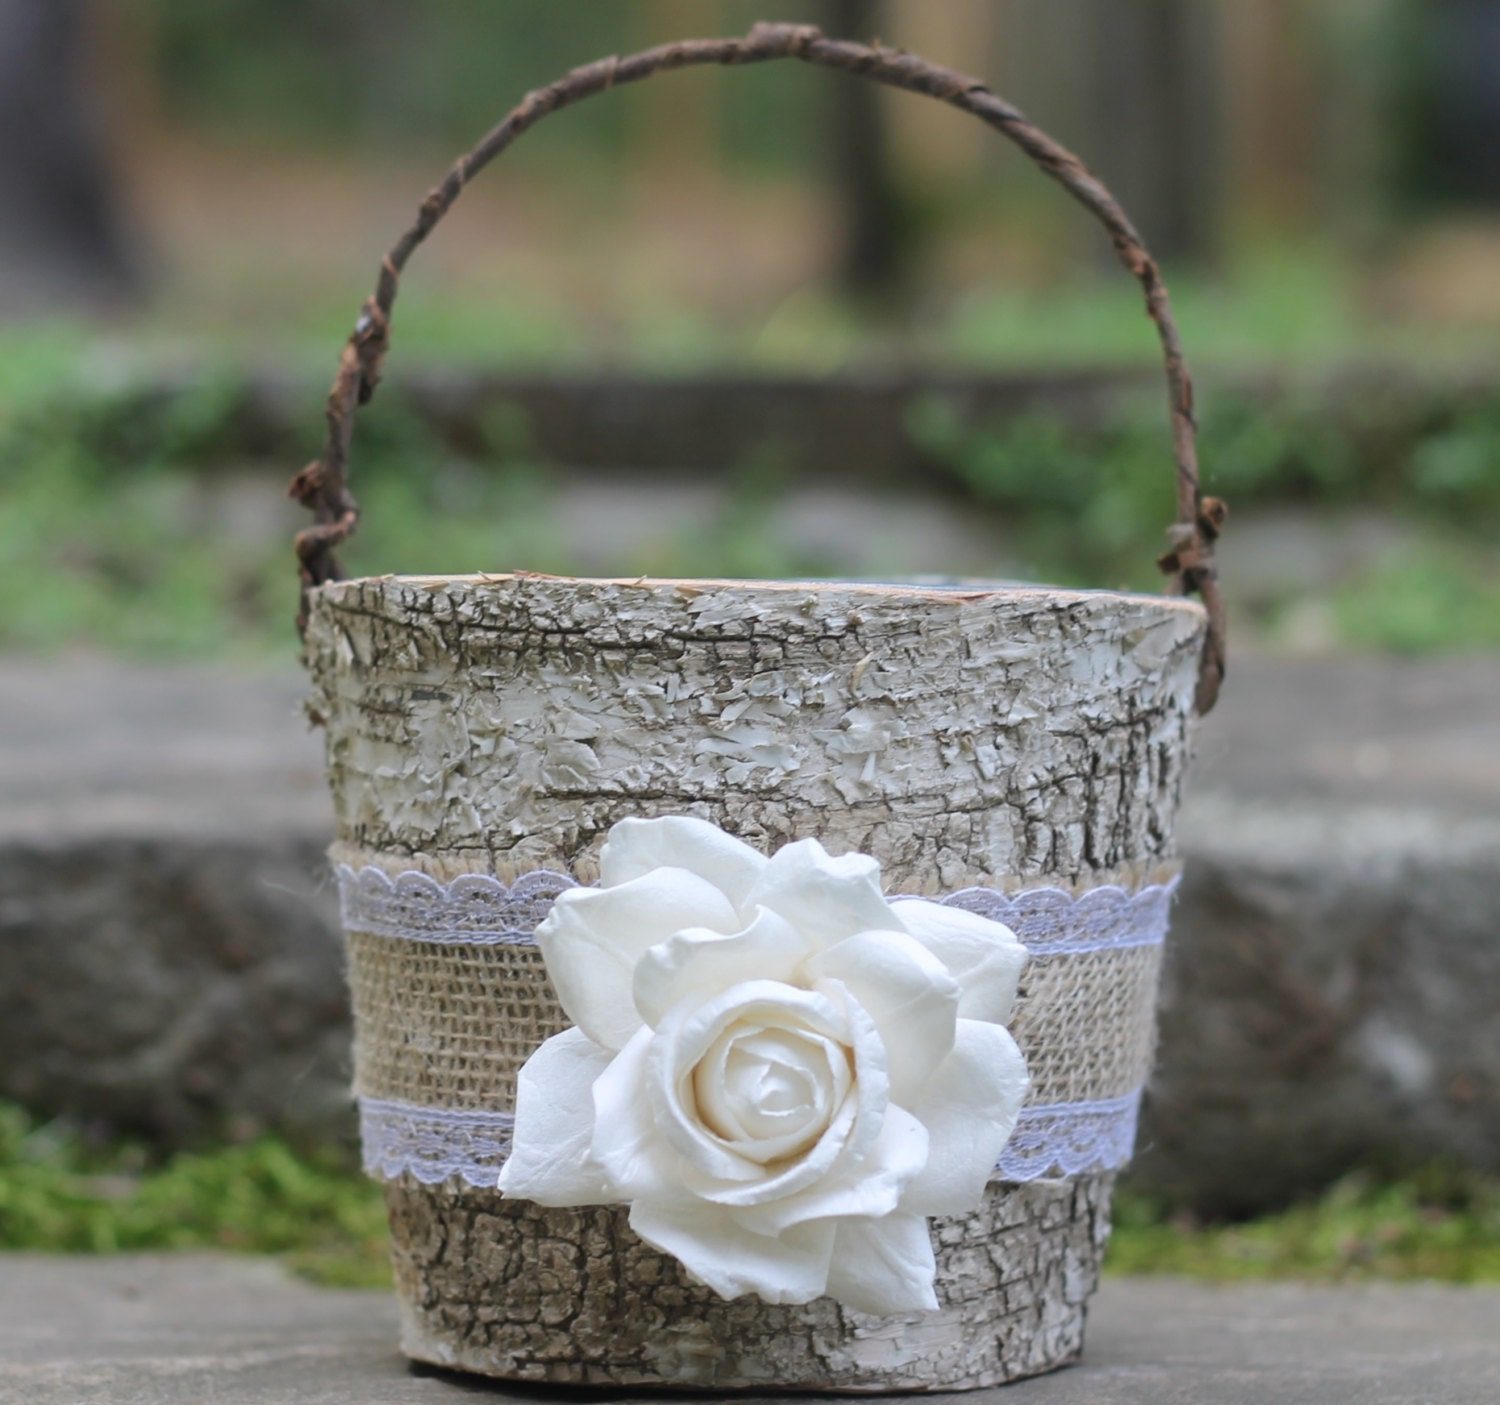 Flower Girl Baskets Burlap : Birch flower girl basket rustic burlap lace by michelescottage